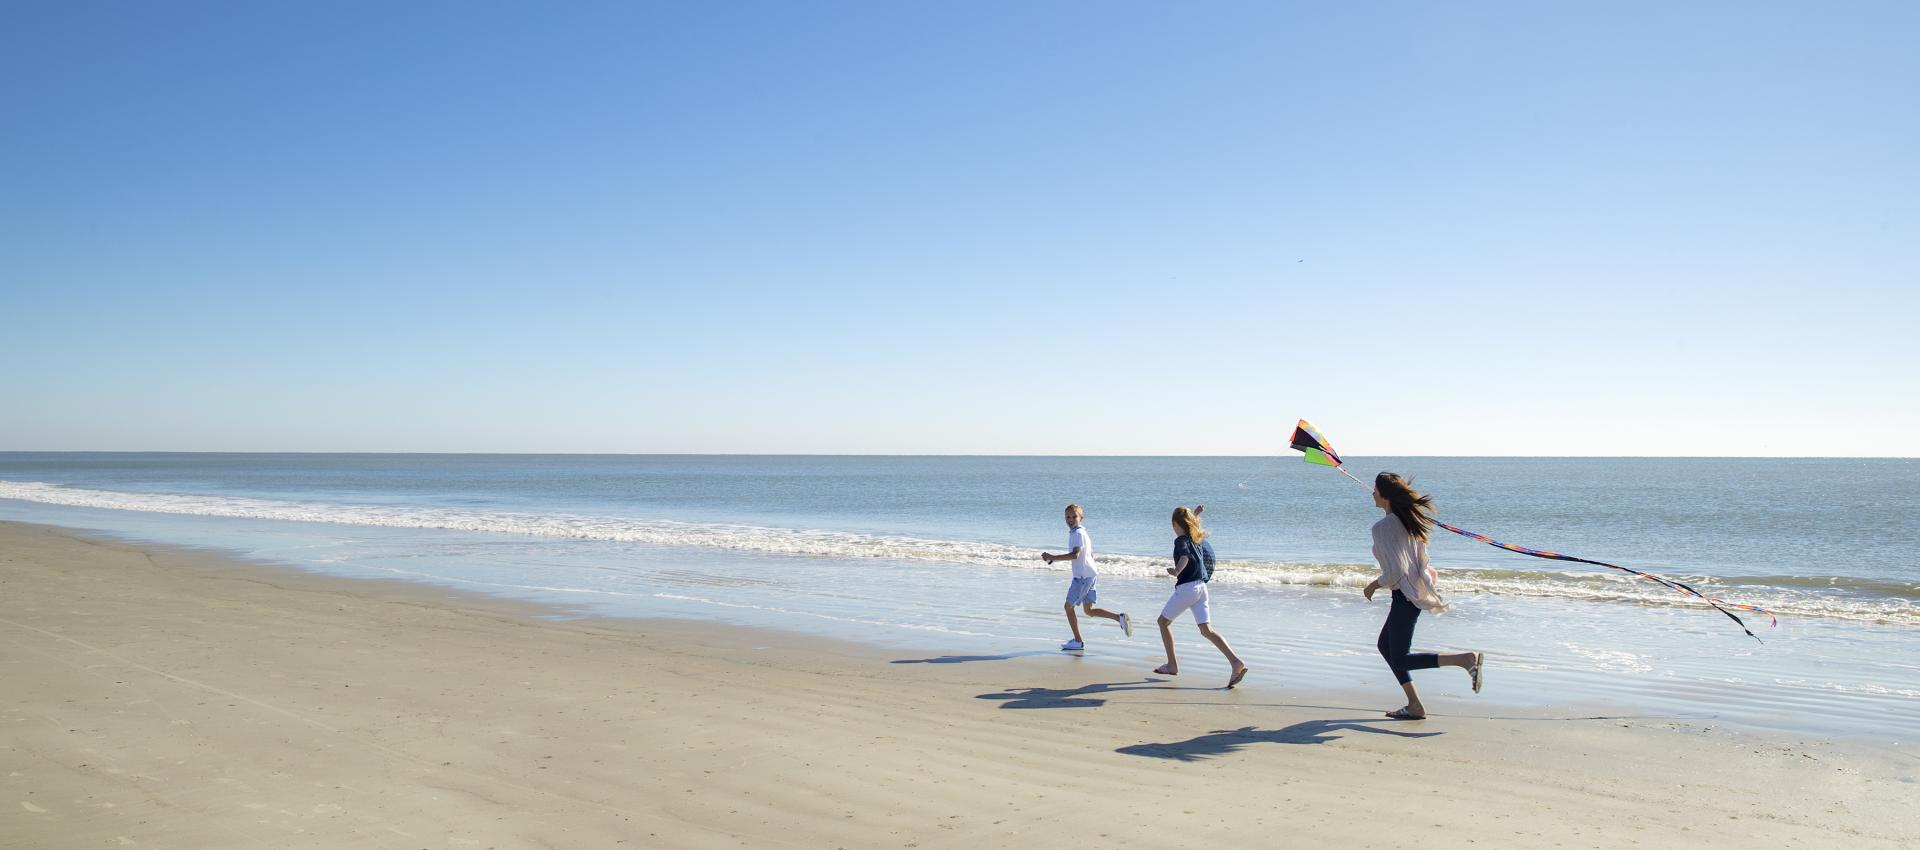 Family flying kite on beach.